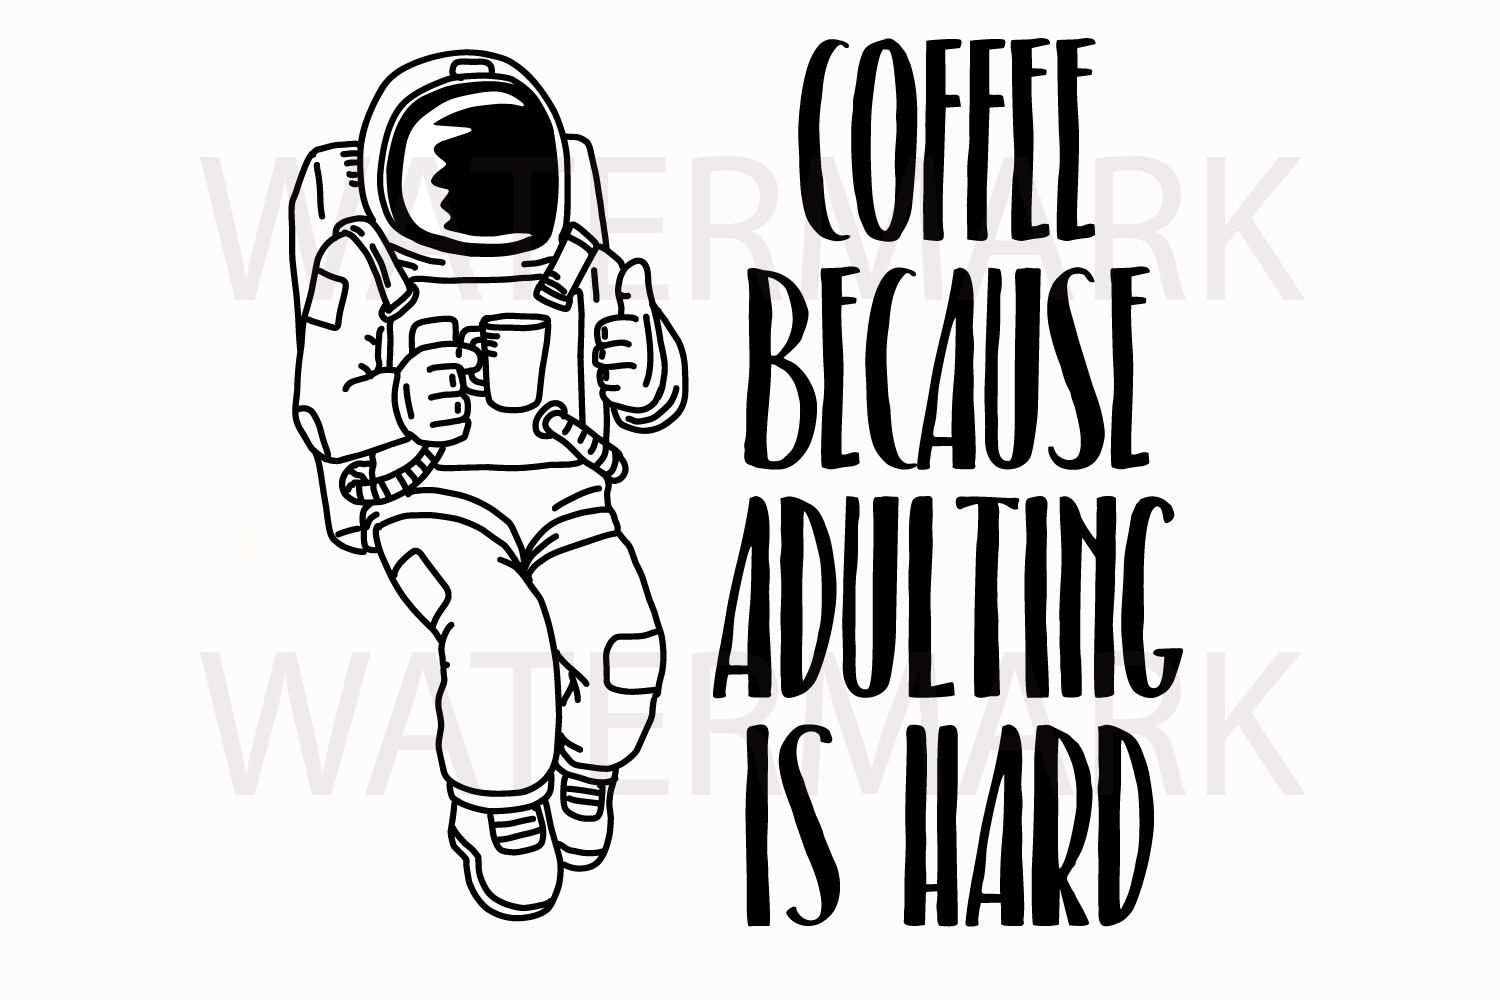 Astronaut drinking coffee because adulting is hard - SVG/JPG/PNG Hand Drawing example image 1